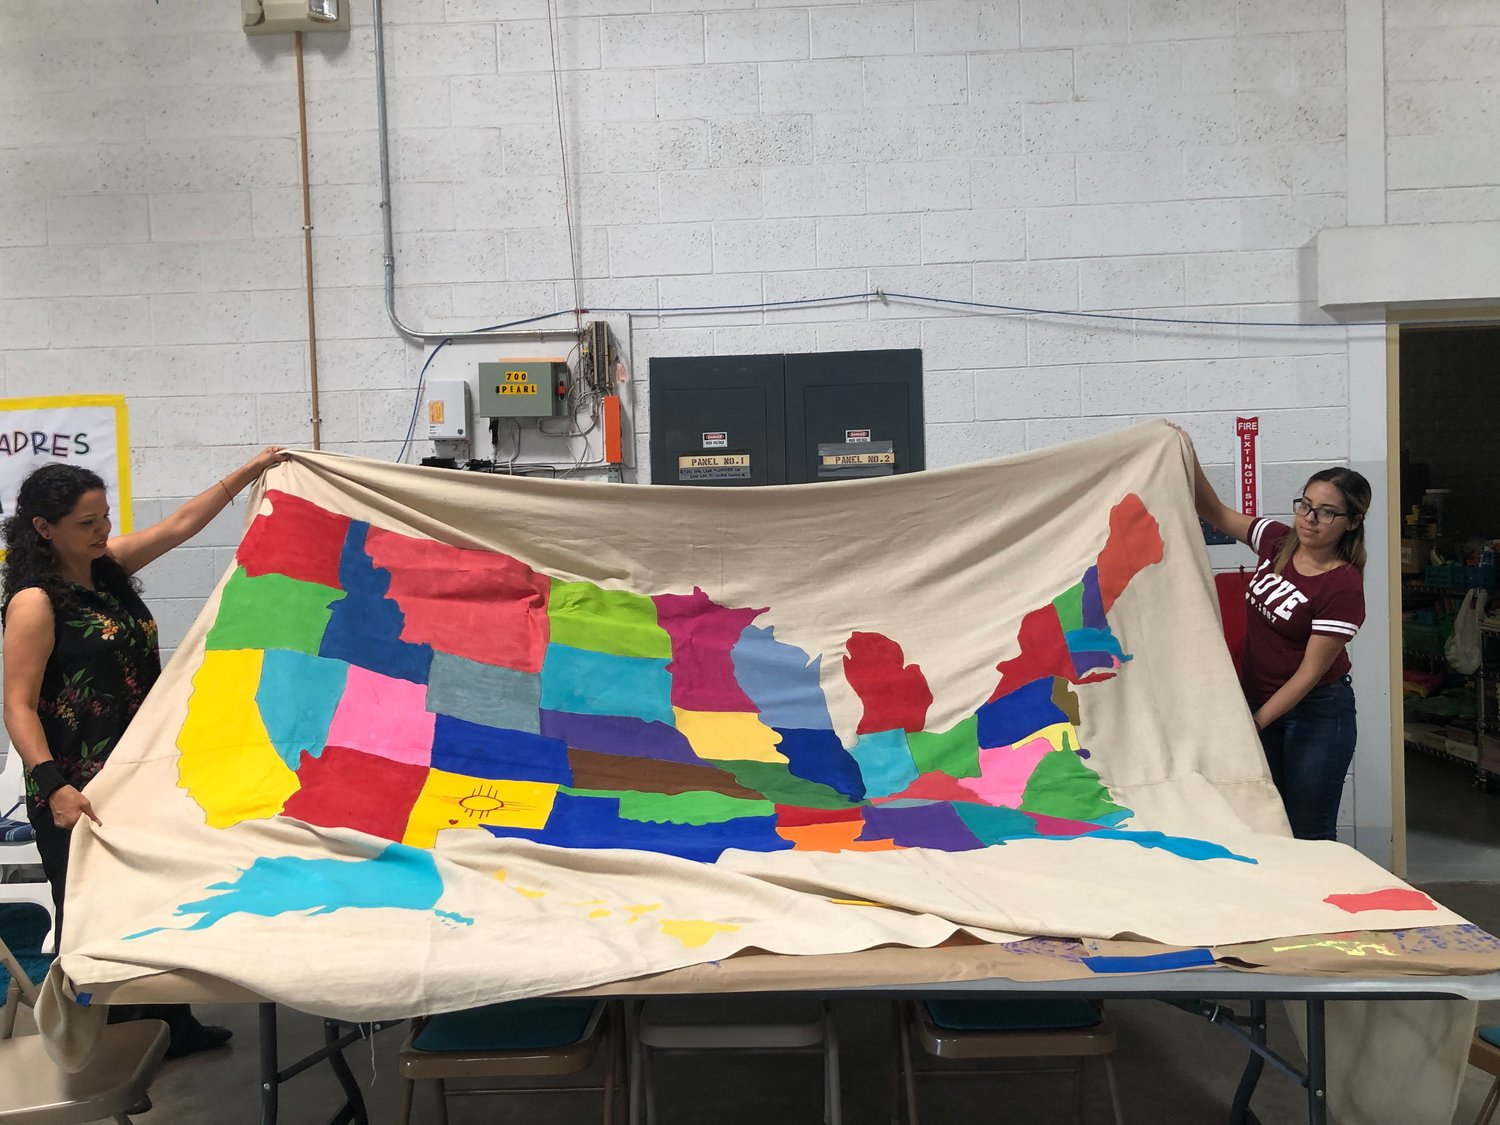 The shelter in Deming they're making a 